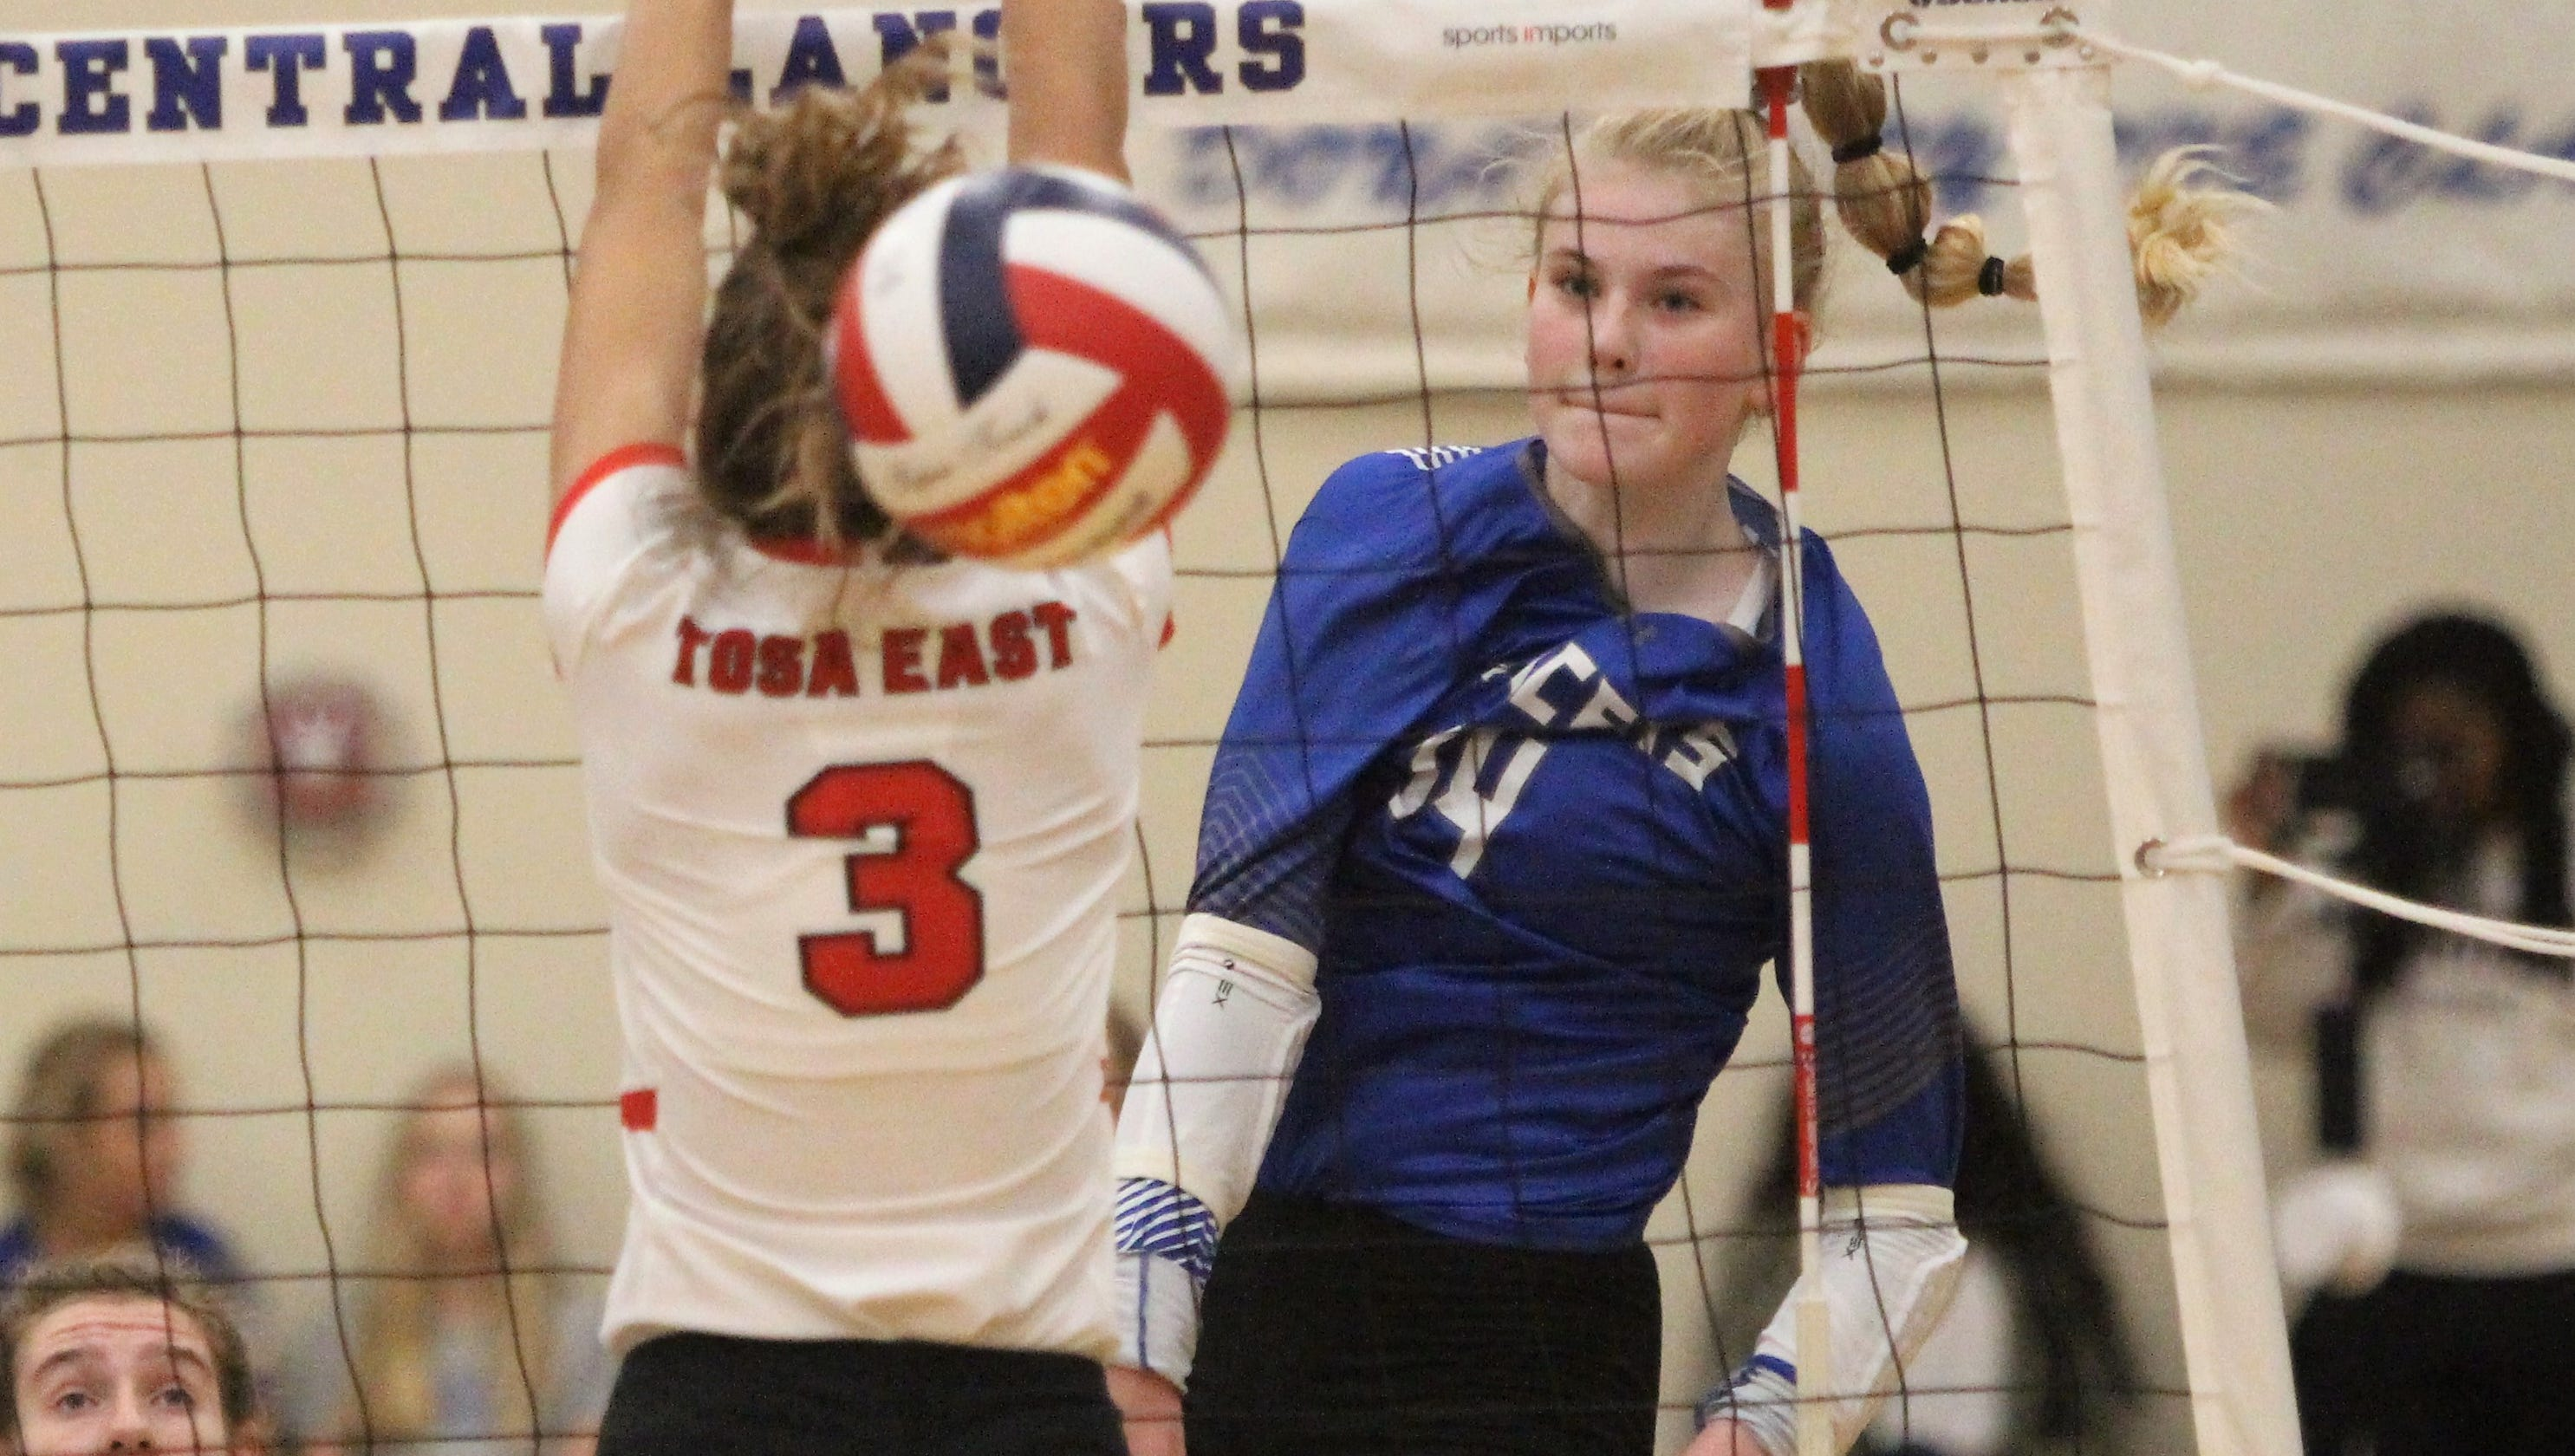 ef122f6f58b A 'lethal attacker,' Brookfield Central's Mckenna Wucherer made a college  volleyball commitment in middle school